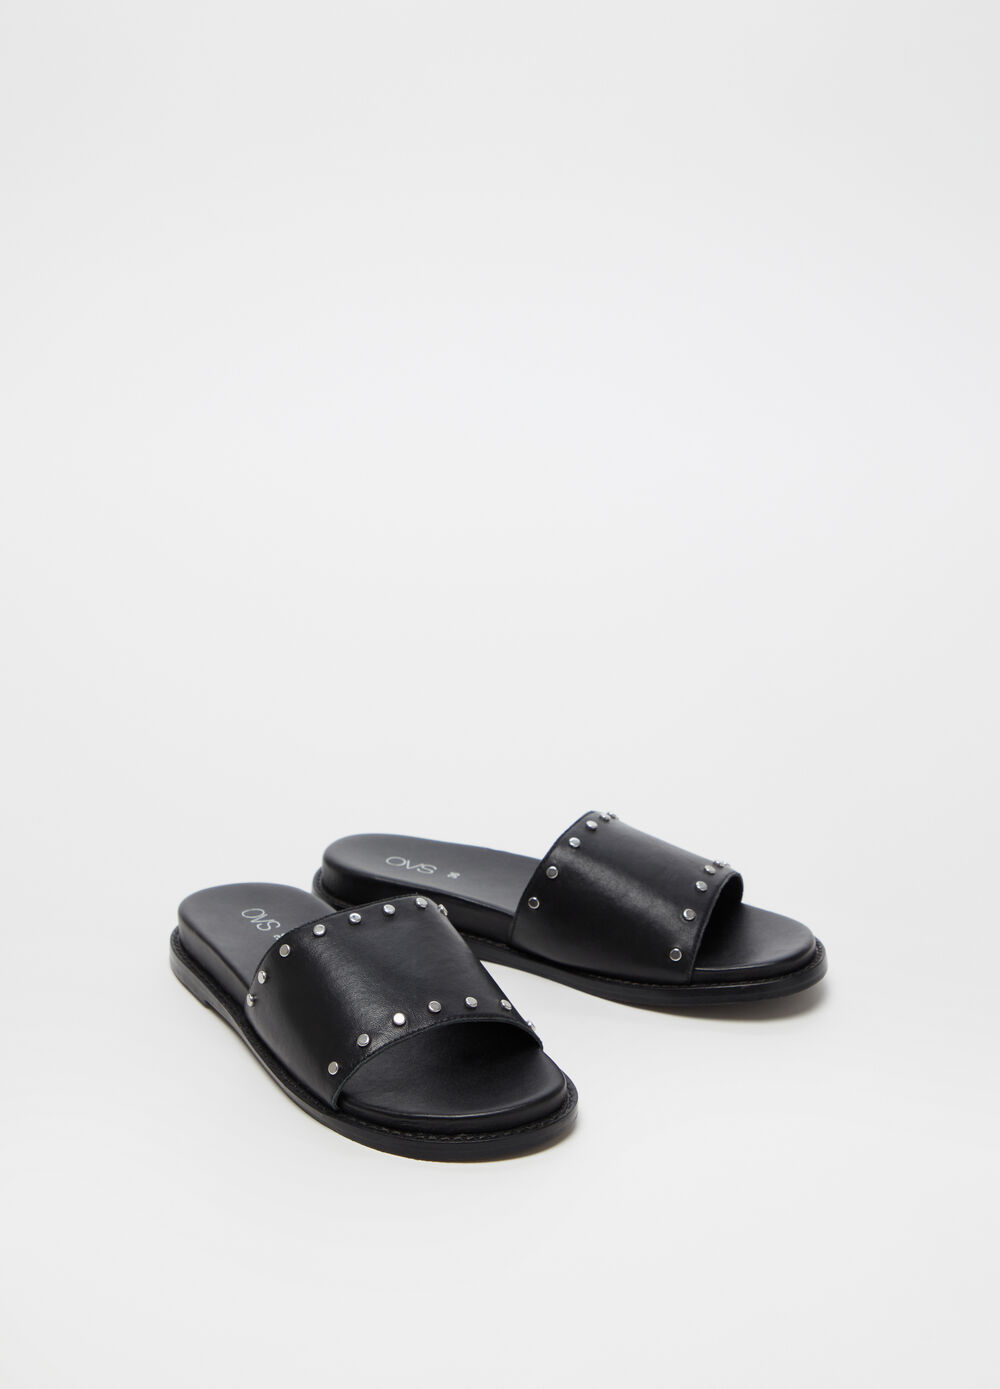 Leather sandal with strap and small studs